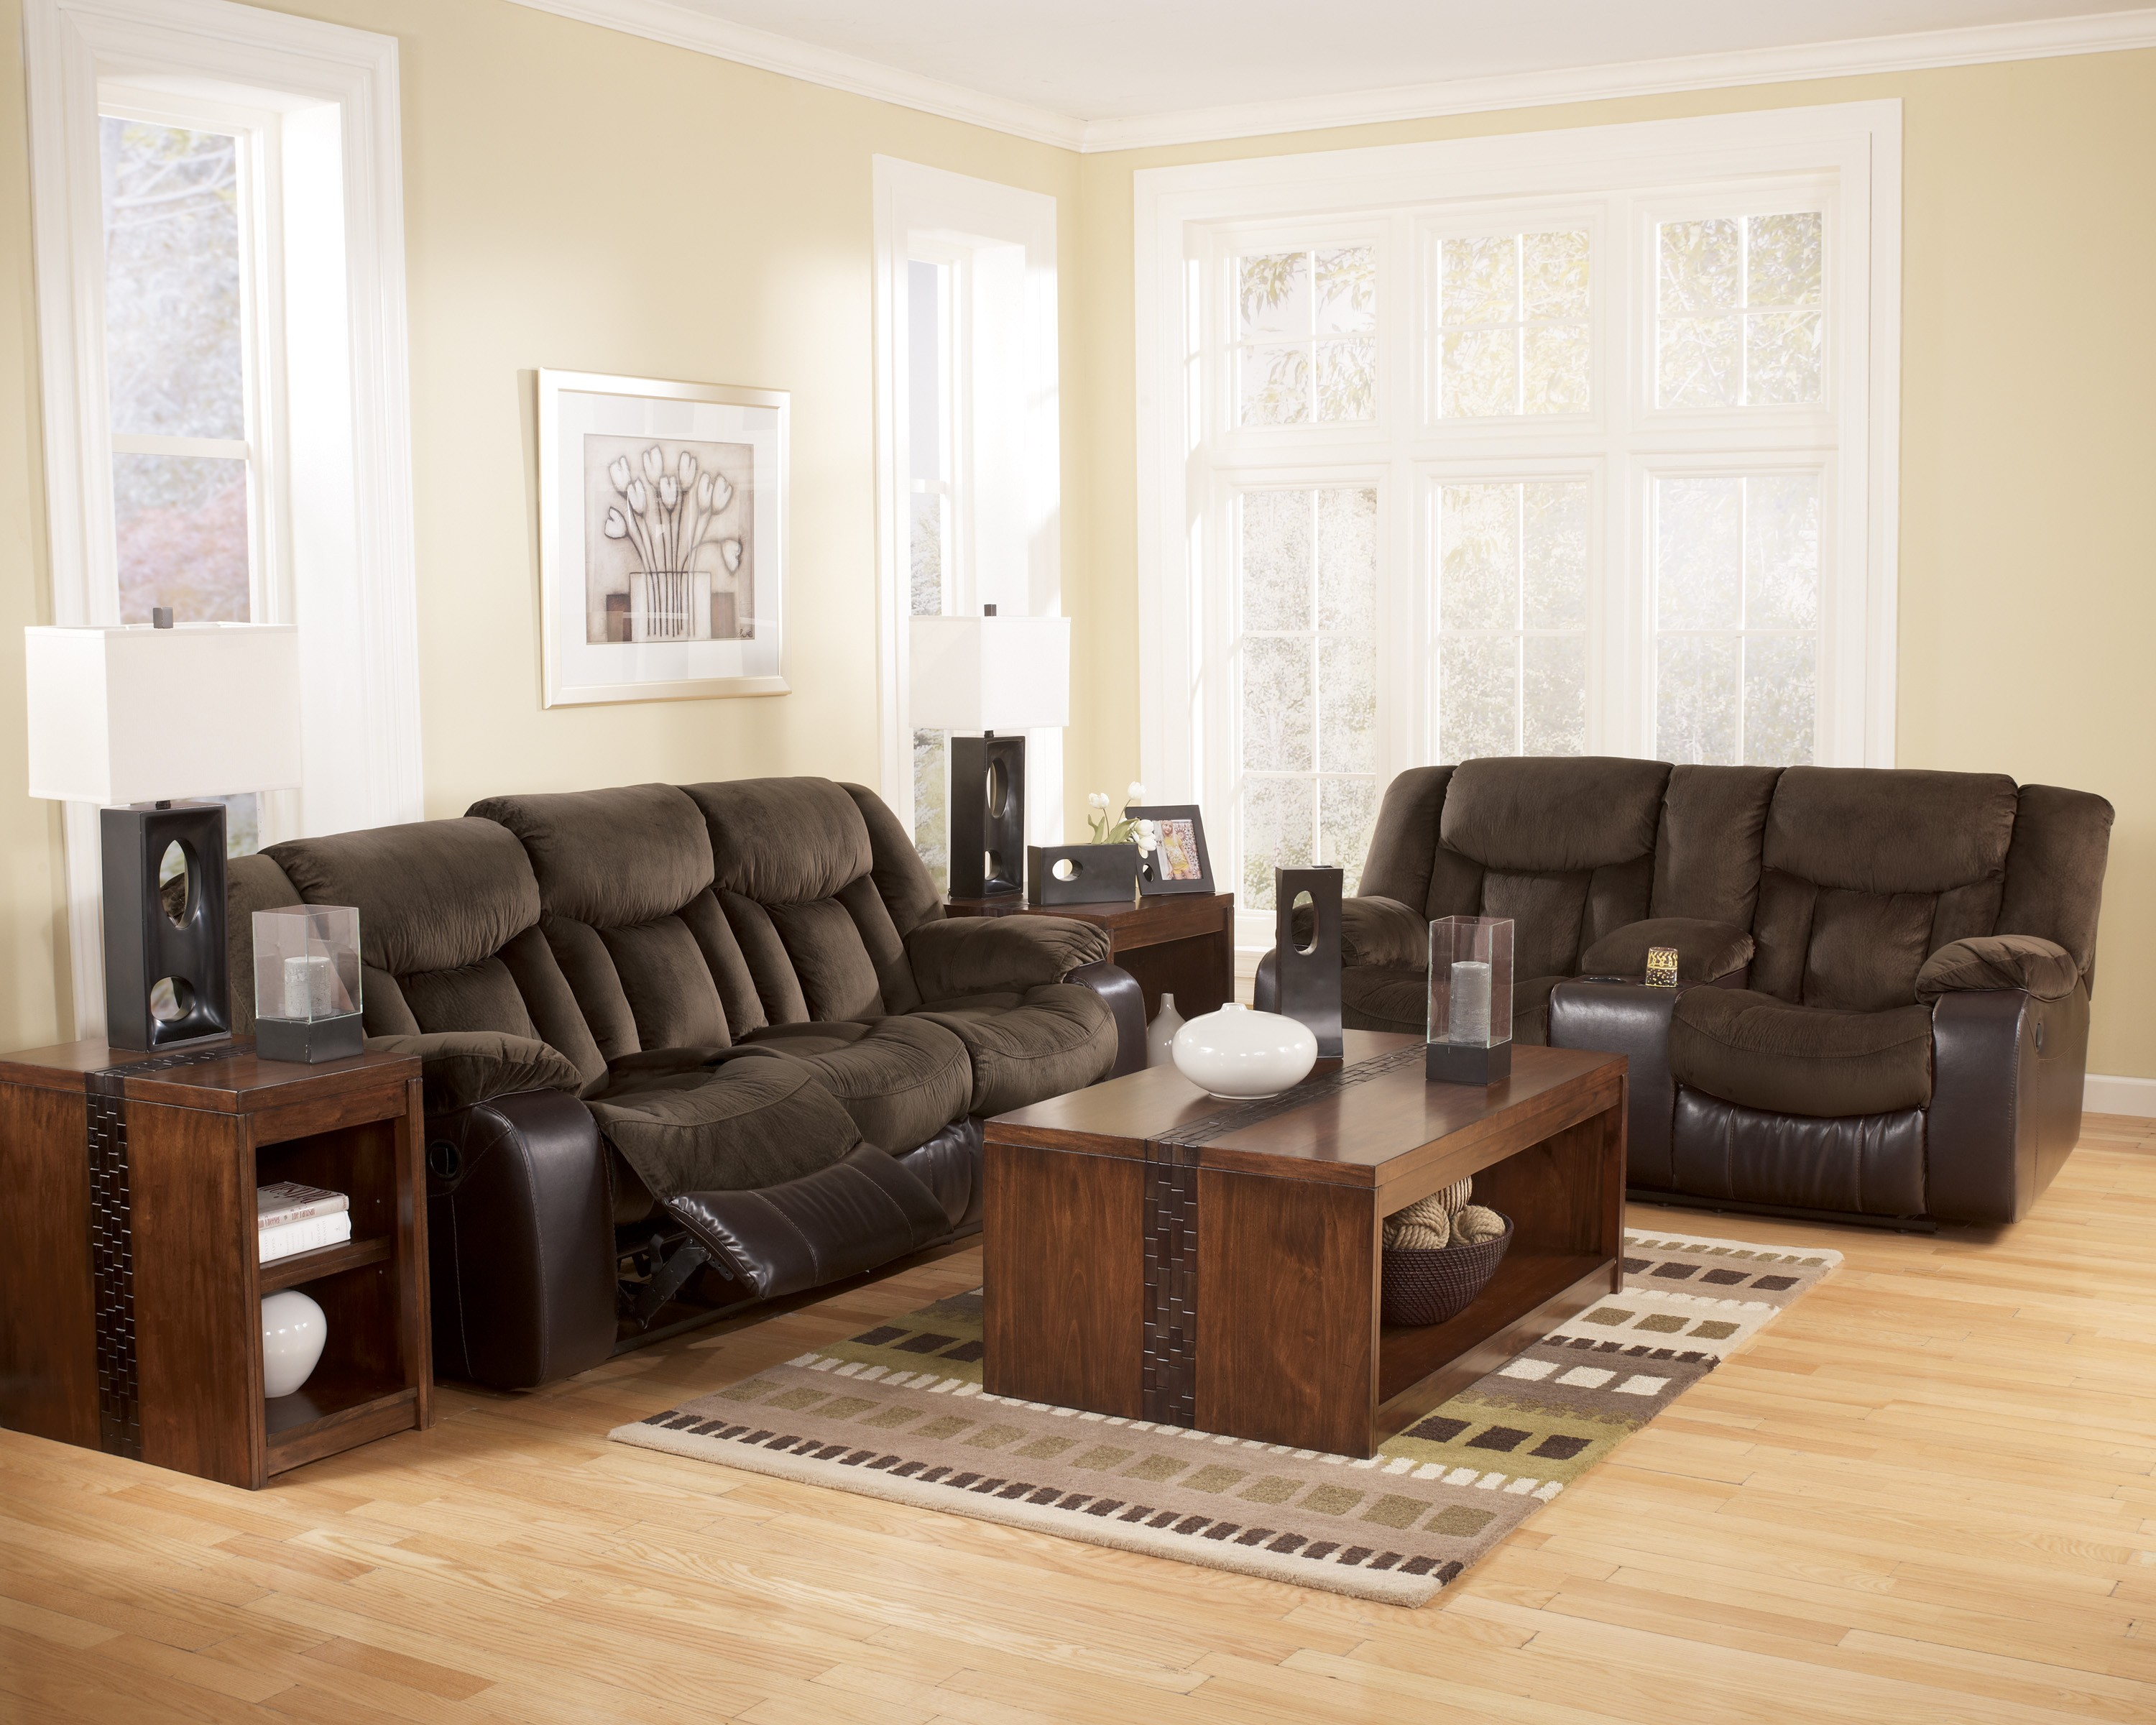 Tafton Java Double Reclining Loveseat With Console From